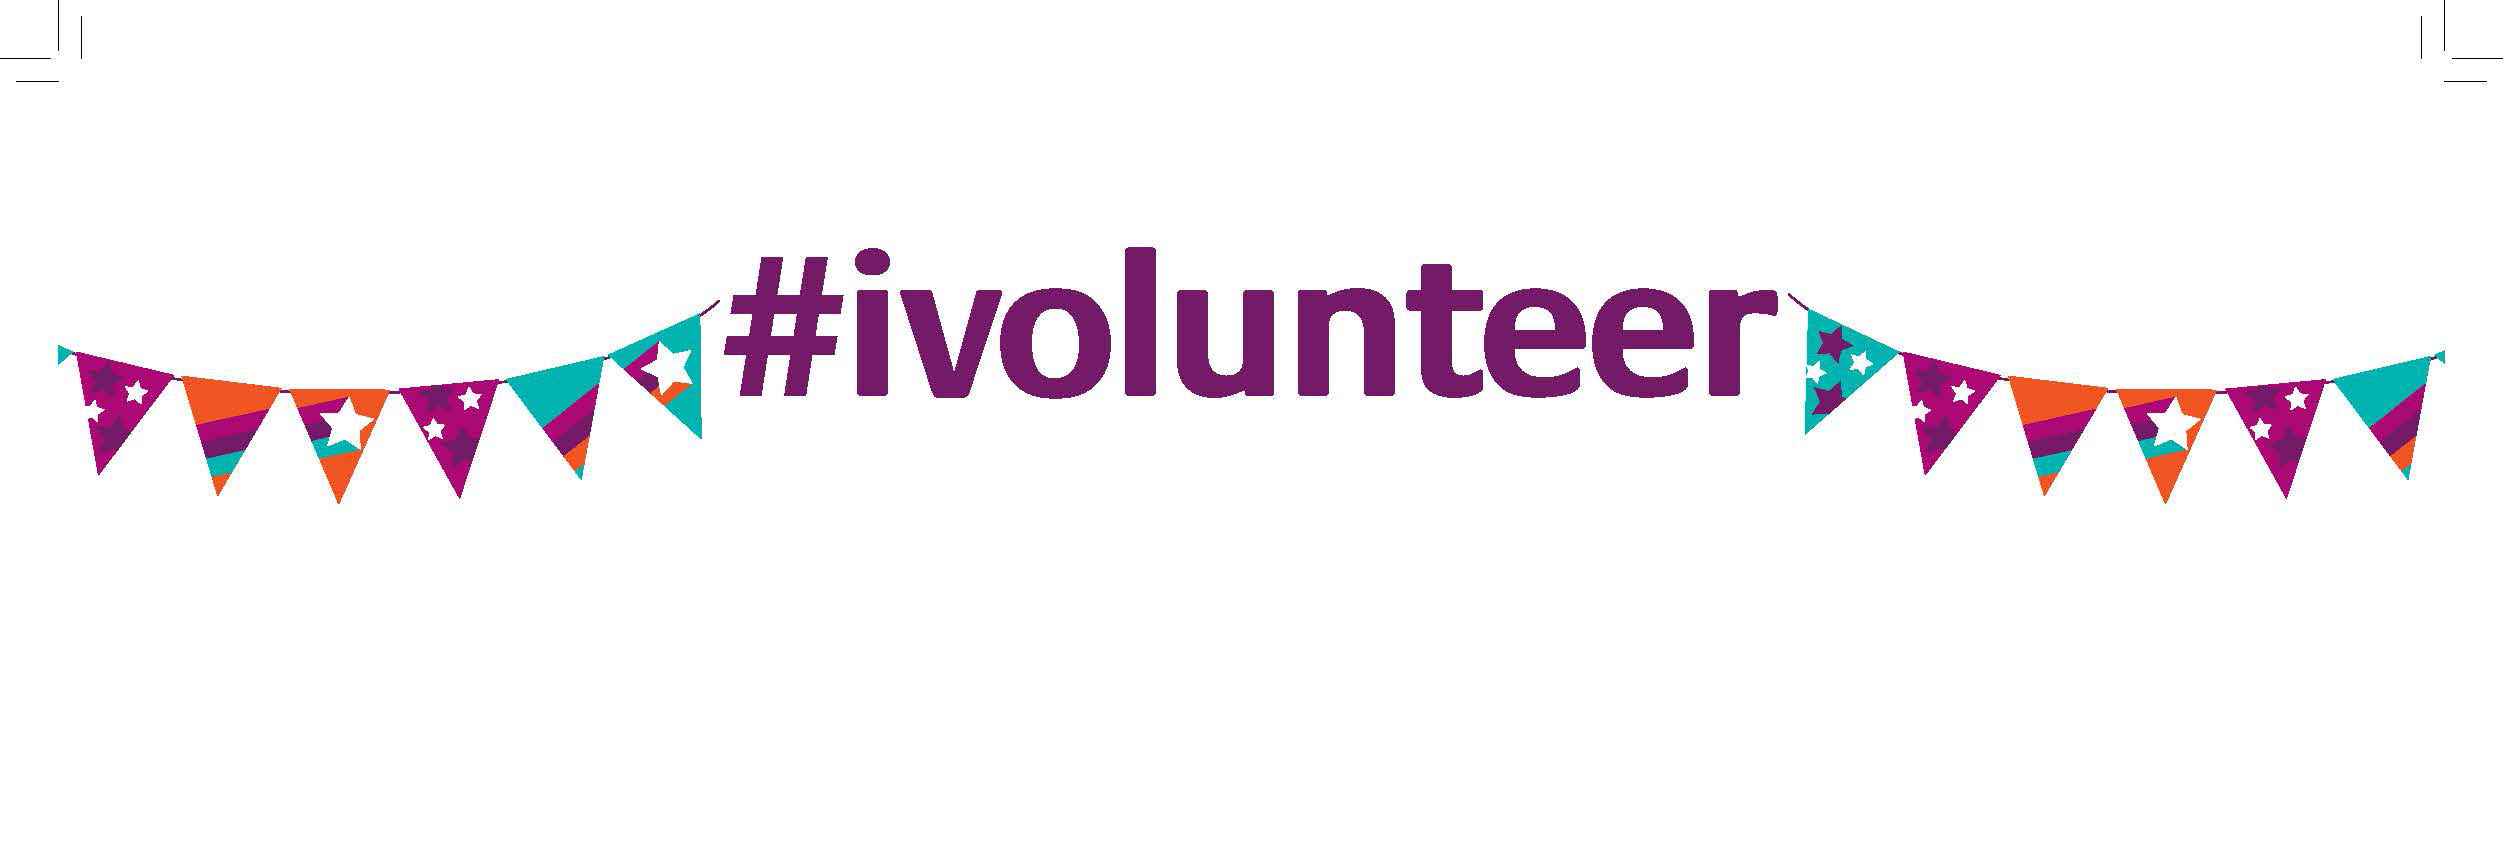 You Can Make The Difference – It's Fun And Rewarding To Volunteer